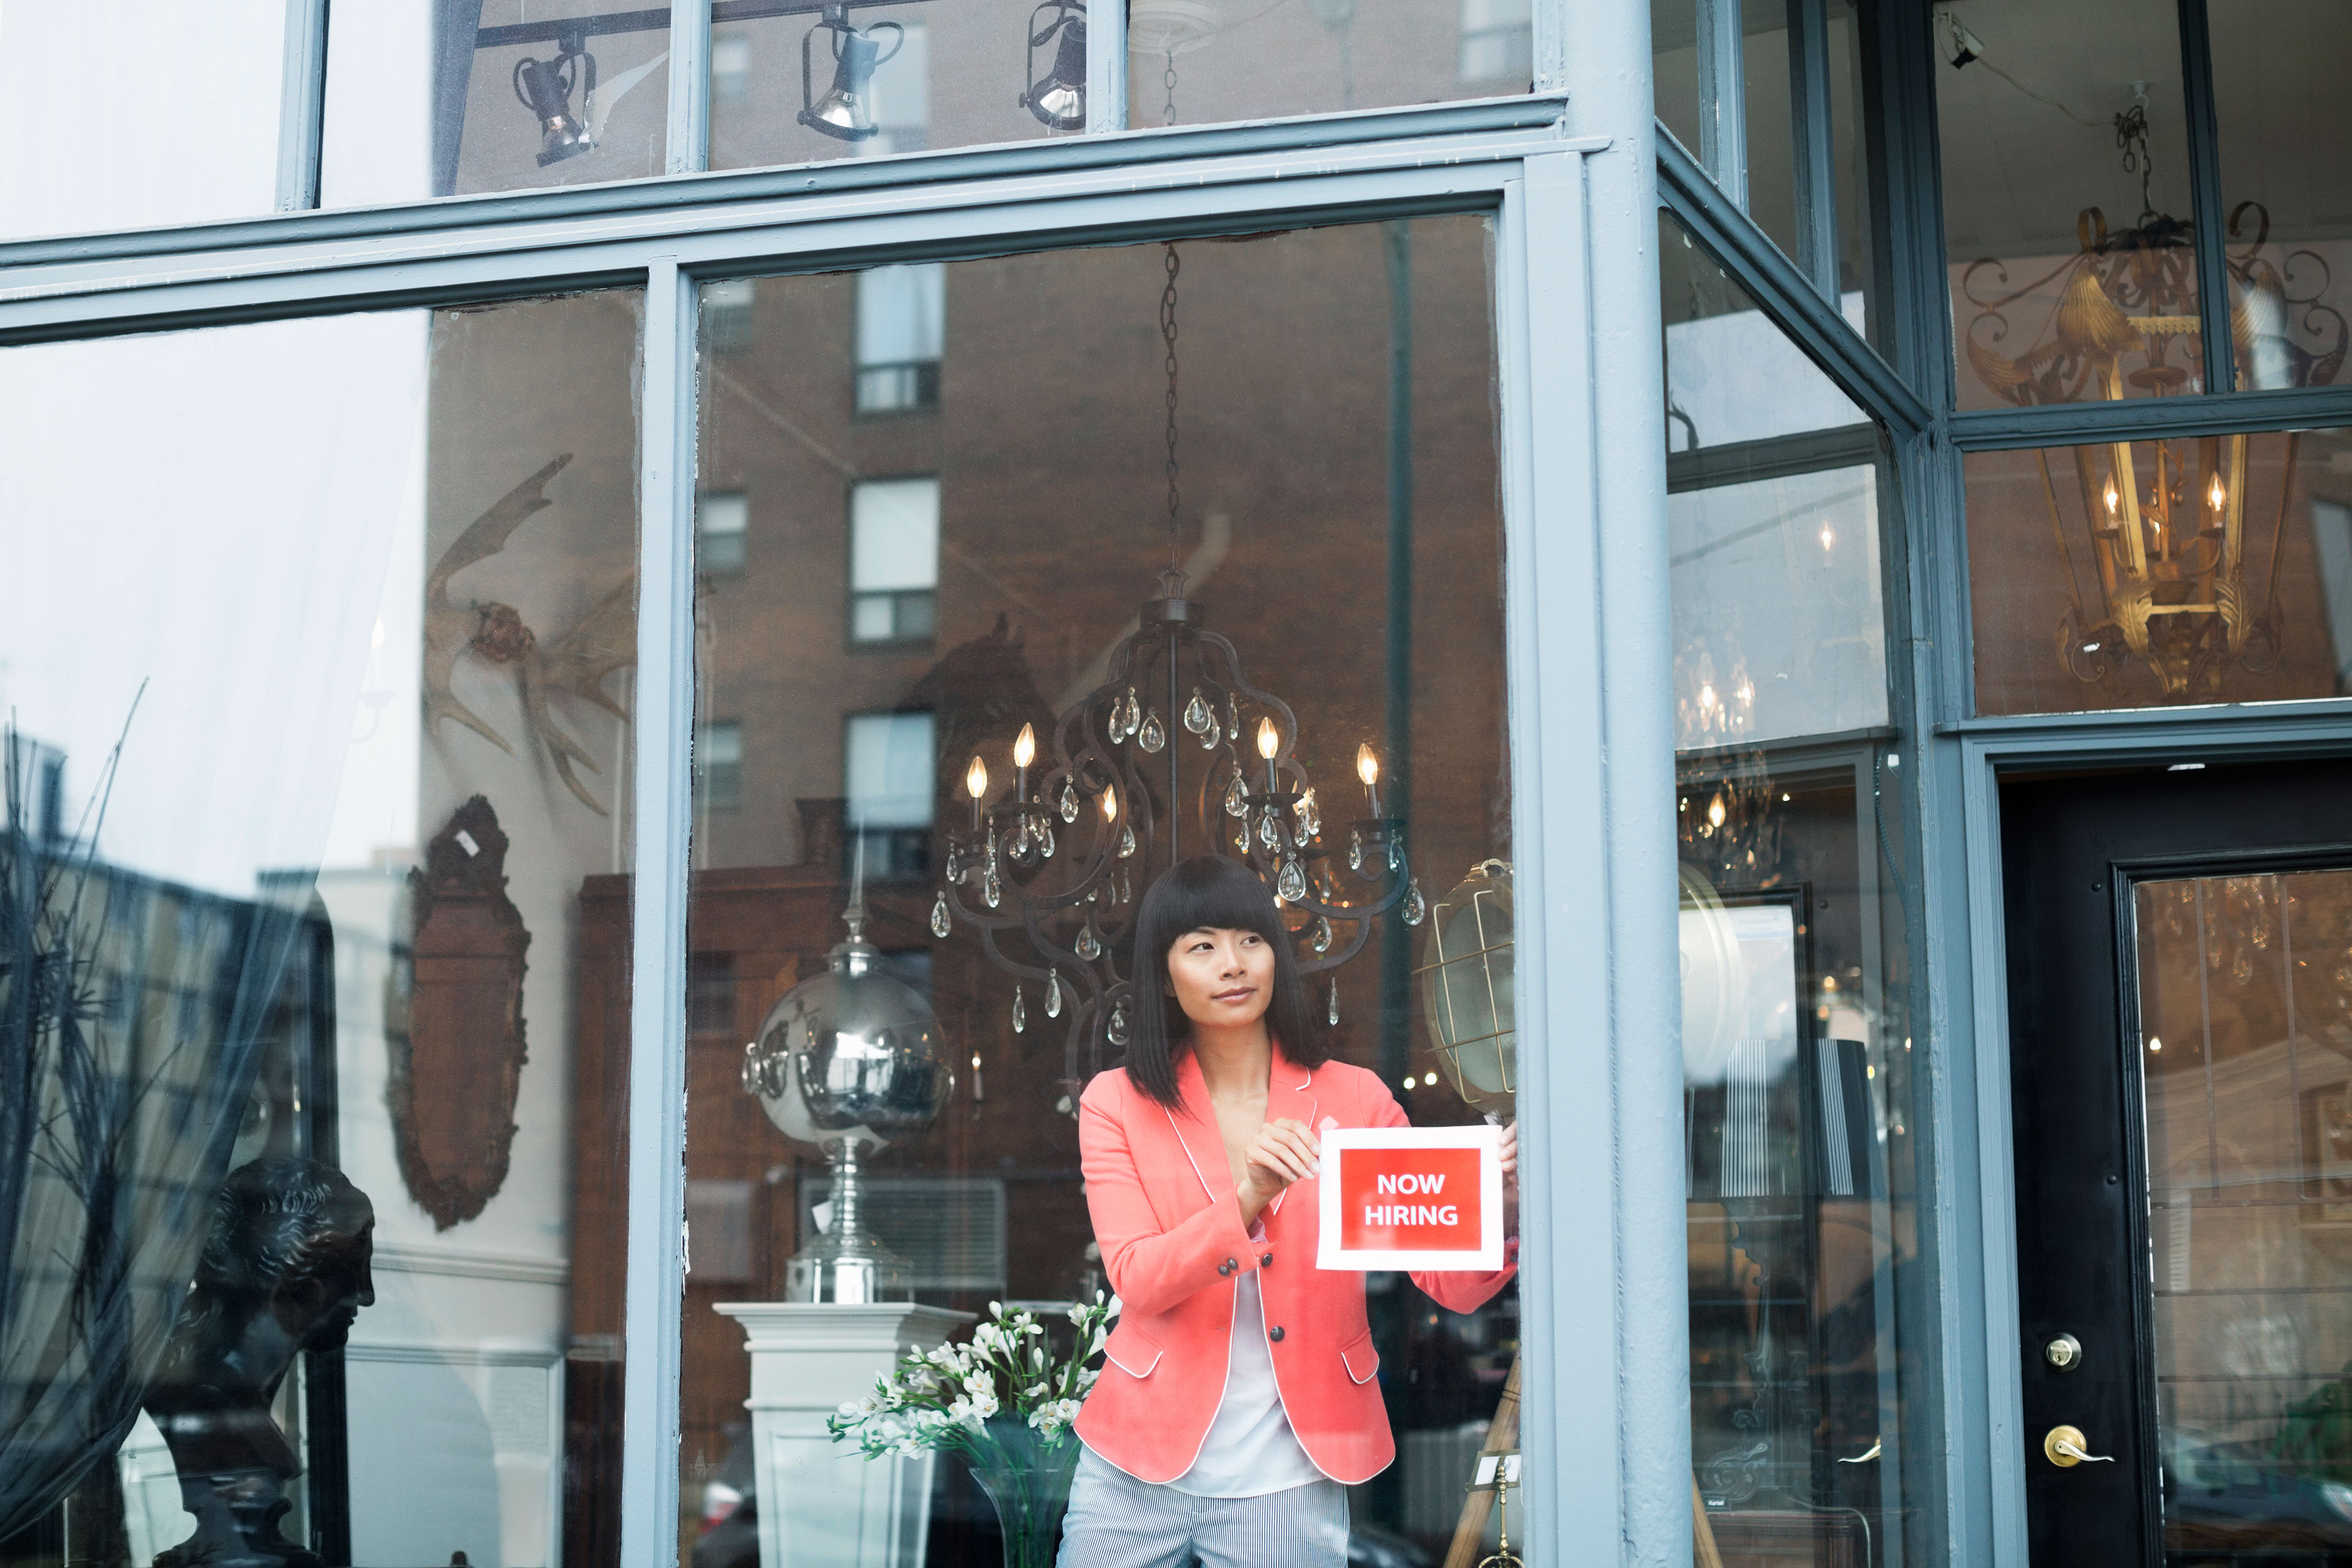 EY - Woman displaying help wanted sign in furniture store window